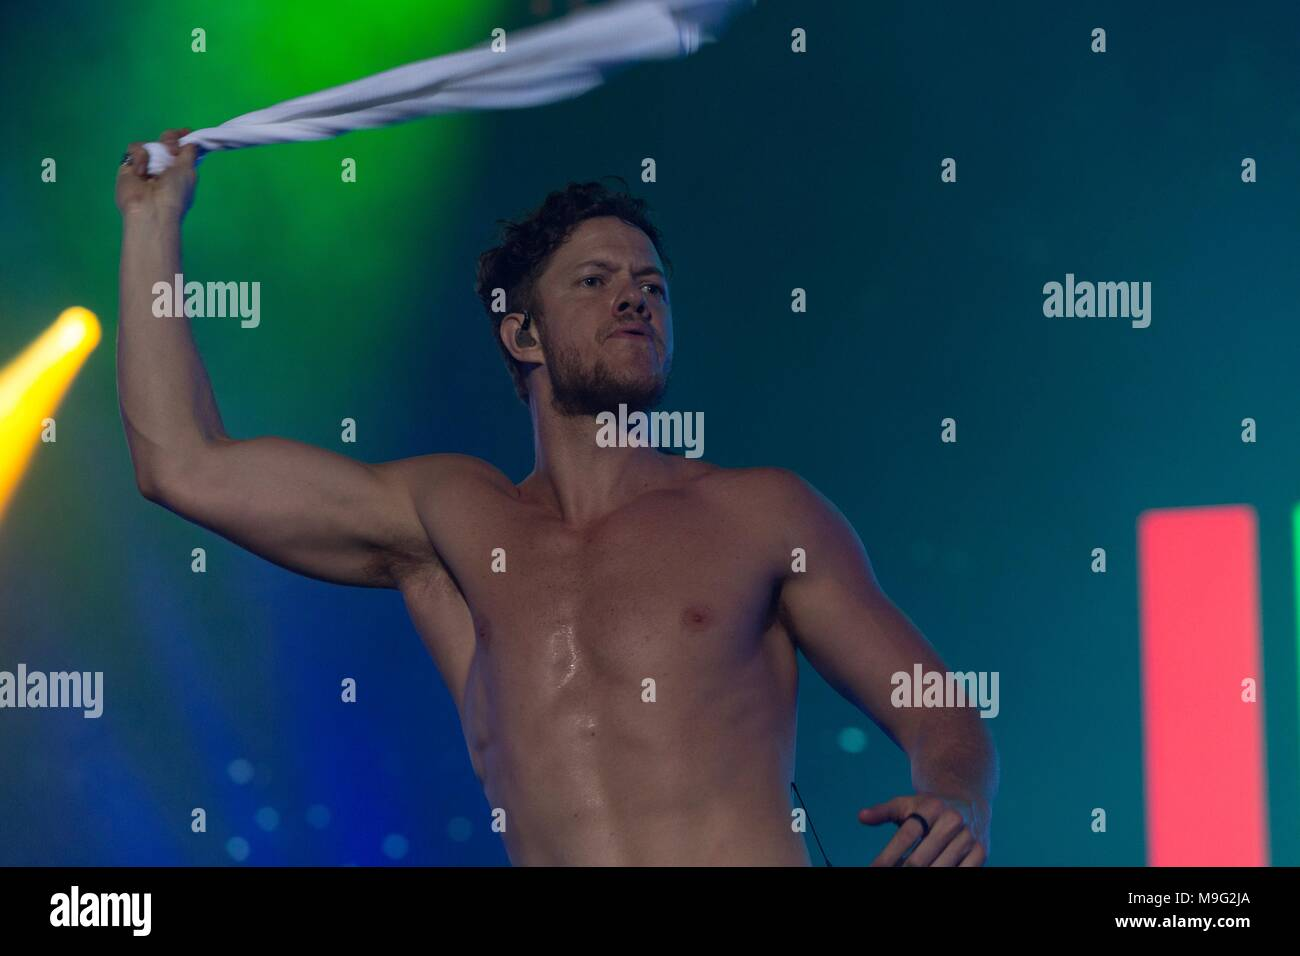 São Paulo, Brazil, 24 March 2018. Imagine Dragons performs during second day of Lollapalooza  Brazil 2018 at Autódromo de Interlagos,  on March 24, 2018 in São Paulo, Brazil. (Photo by Adriana Spaca) - Stock Image